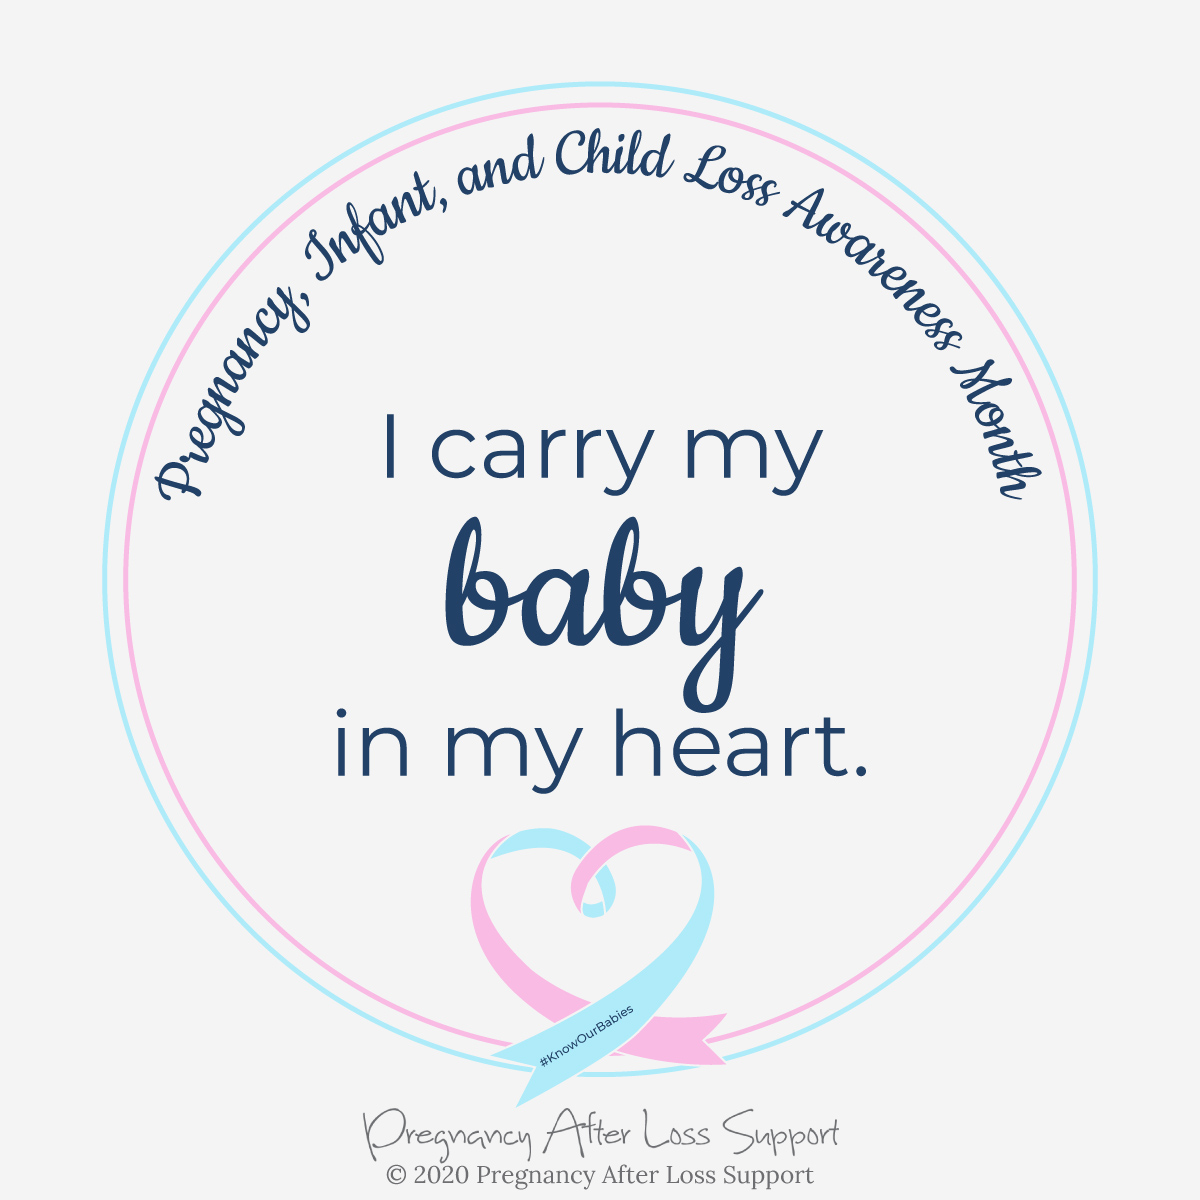 I carry my baby in my heart - Pregnancy, Infant, and Child Loss Awareness Month